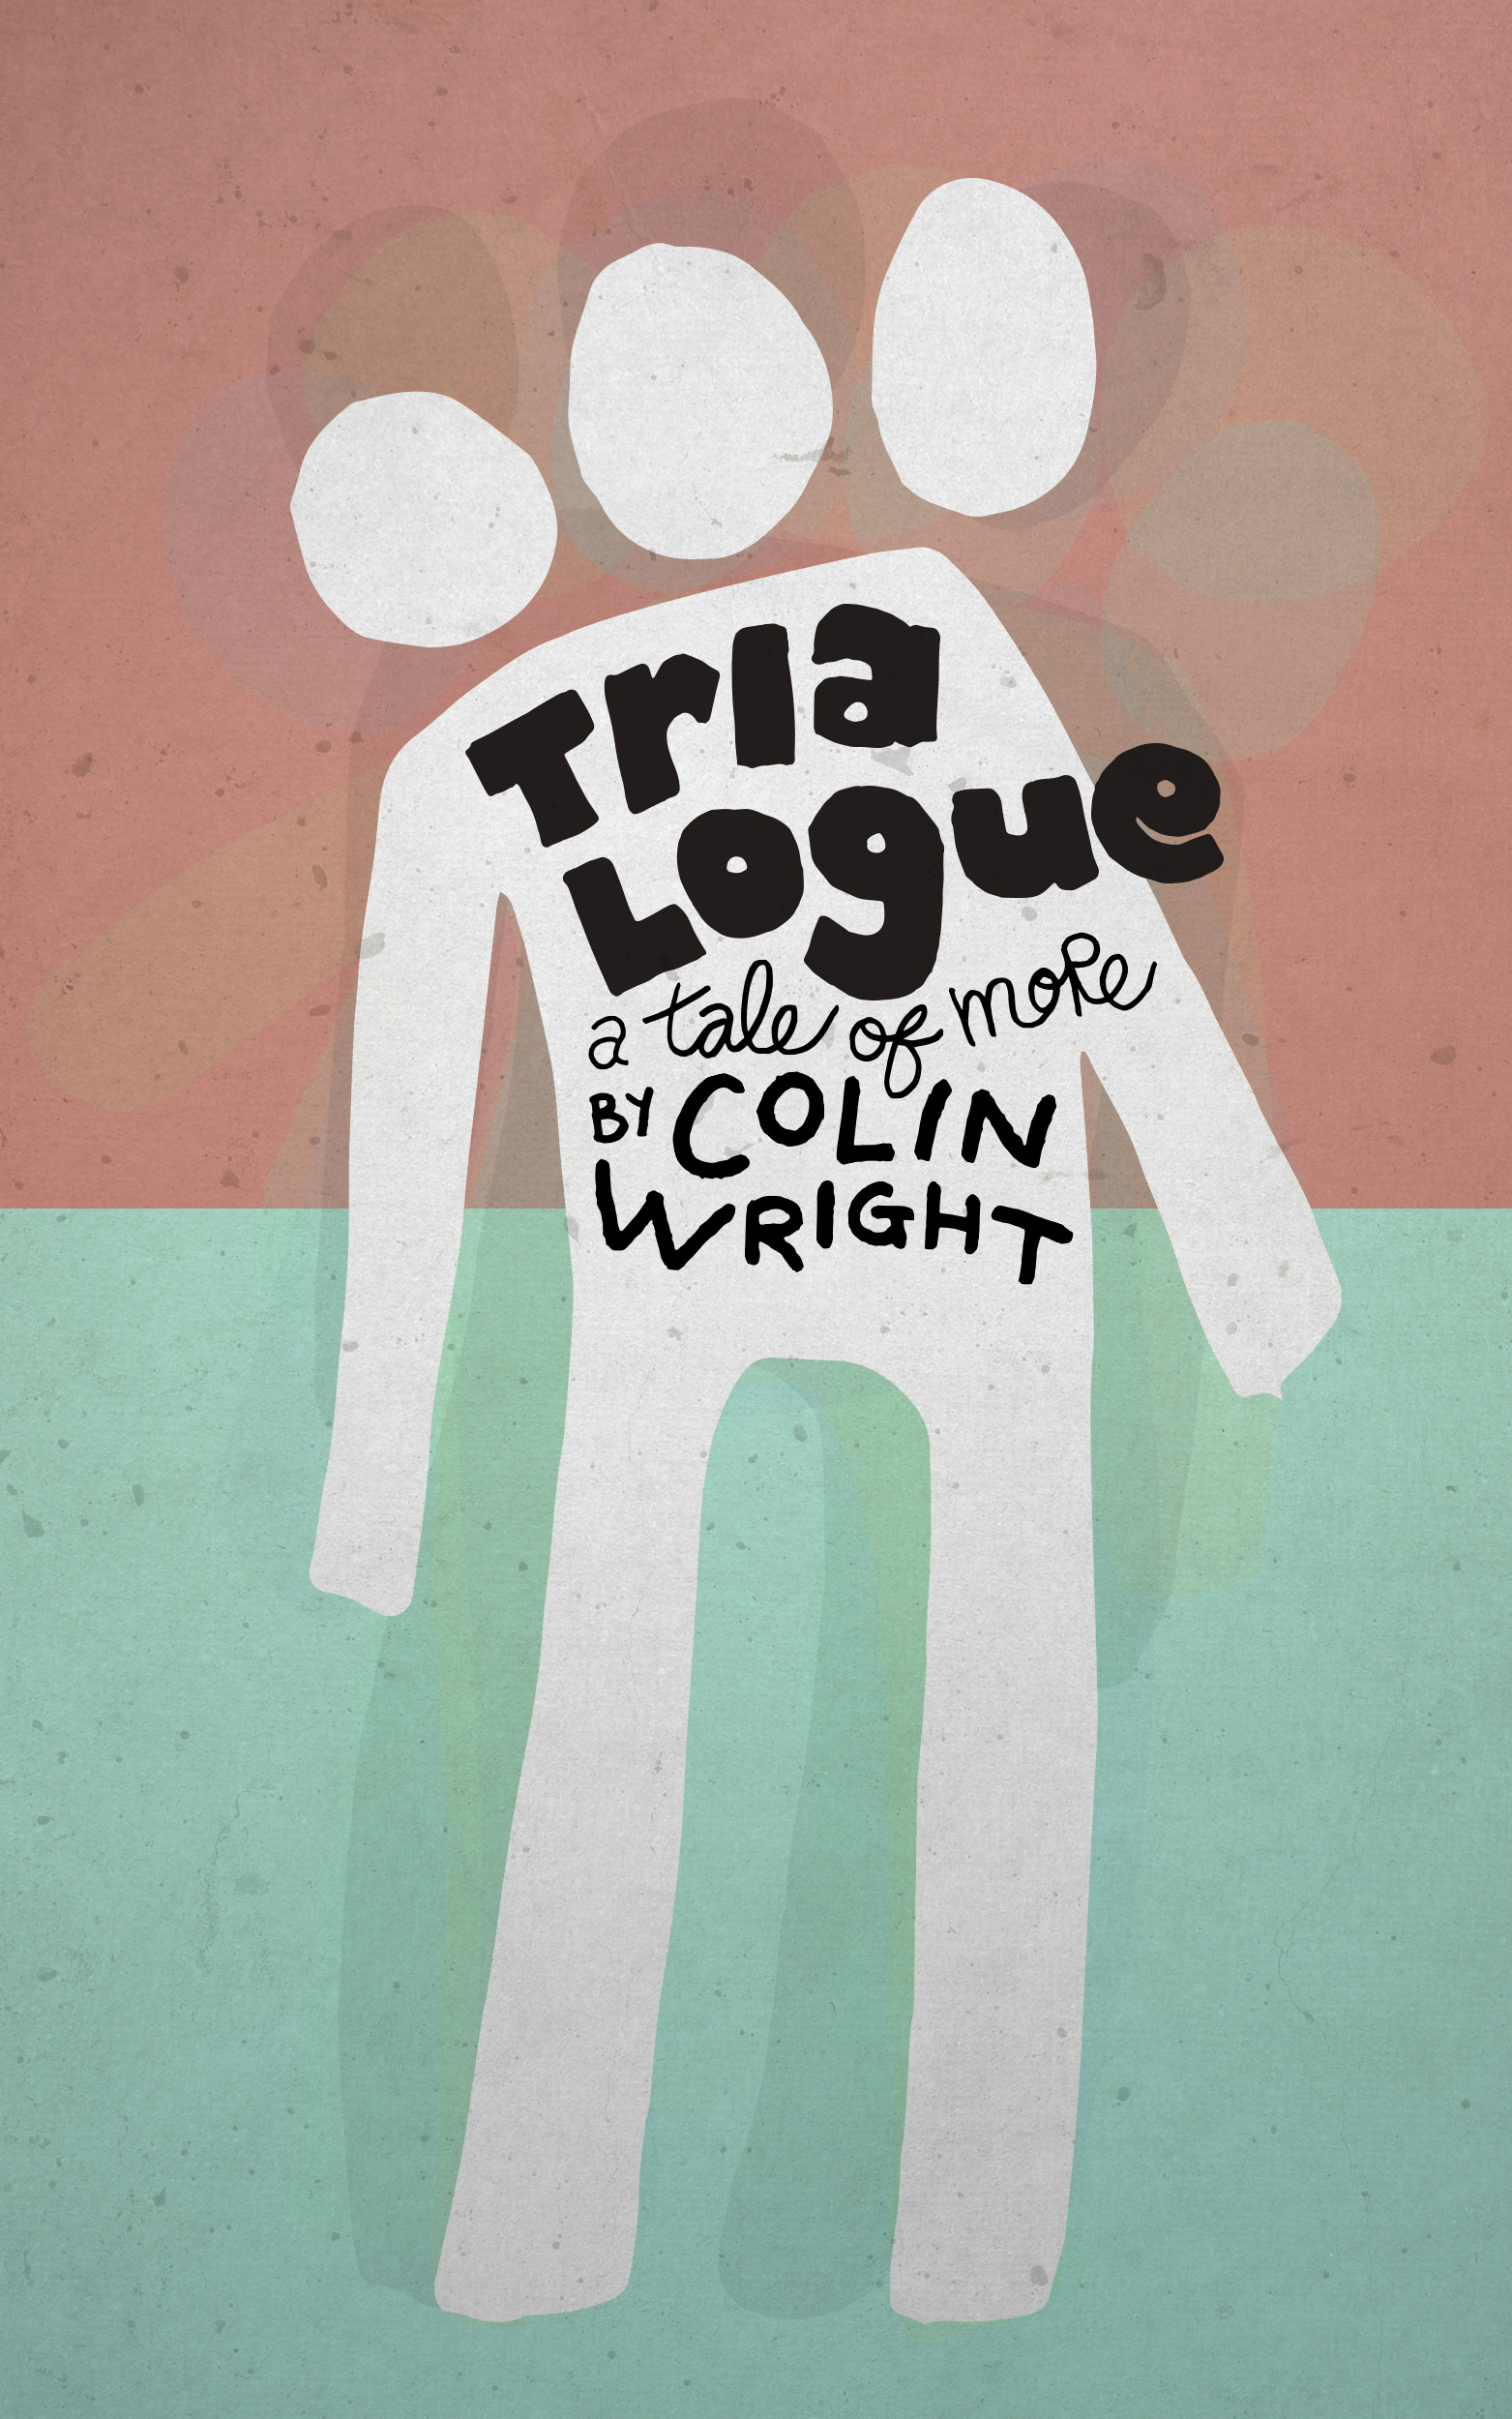 Trialogue: A Tale of More by Colin Wright